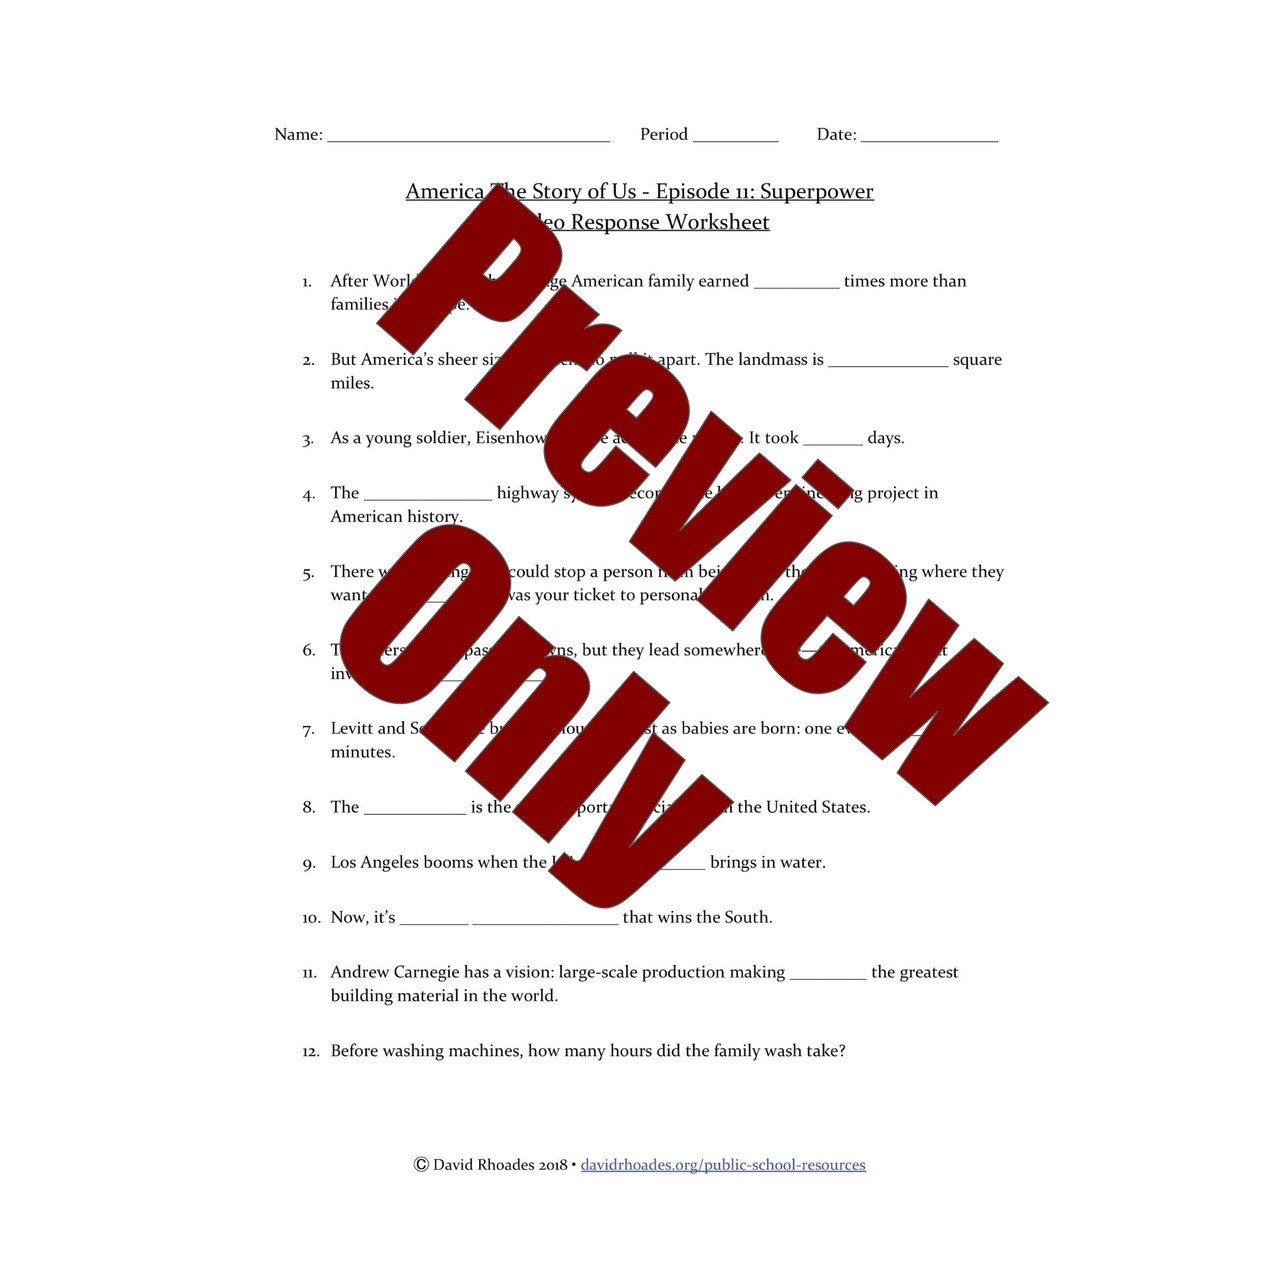 medium resolution of America The Story of Us - Episode 11: Superpower - Video Response Worksheet  \u0026 Key (Editable) - Amped Up Learning